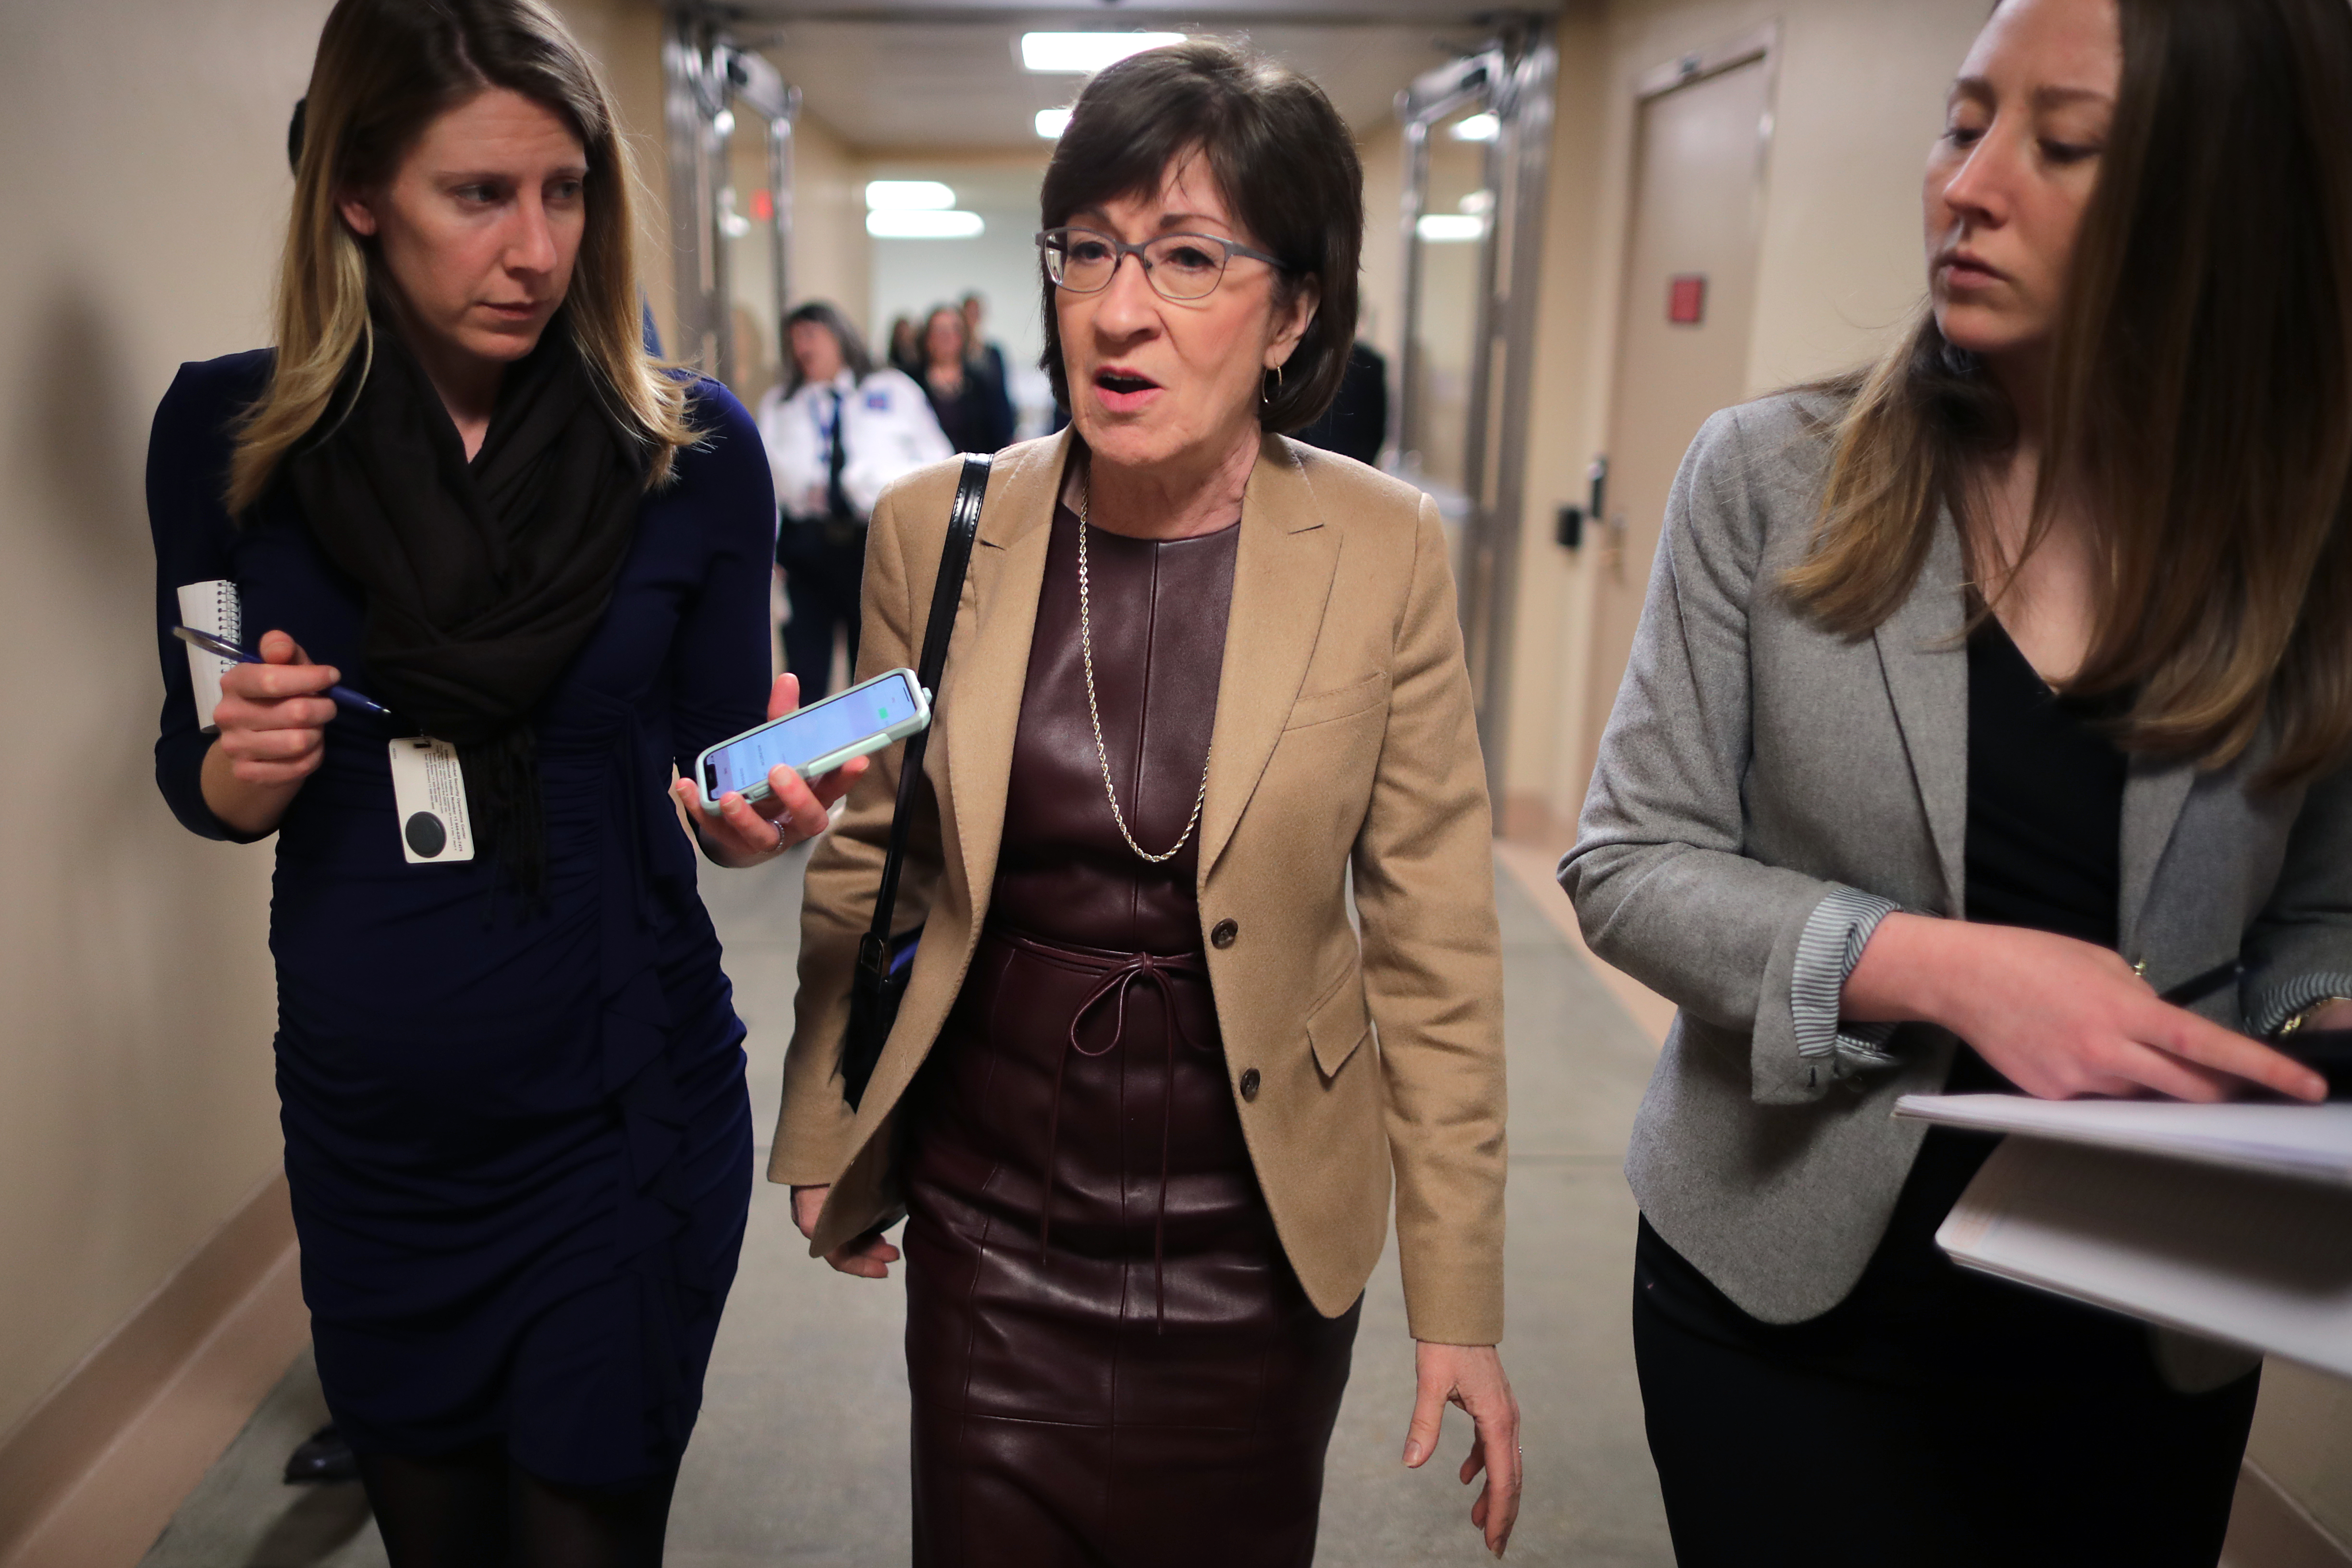 Sen. Susan Collins (R-ME) talks to reporters as she heads to the U.S. Capitol for the weekly Republican policy luncheon March 05, 2019 in Washington, DC. With the support of at least four Republicans, including Collins, the Senate seems poised to approve a resolution of disapproval on President Donald Trump's use of a national emergency declaration to secure the money he wants to build a border wall on the southern border. (Photo by Chip Somodevilla/Getty Images)